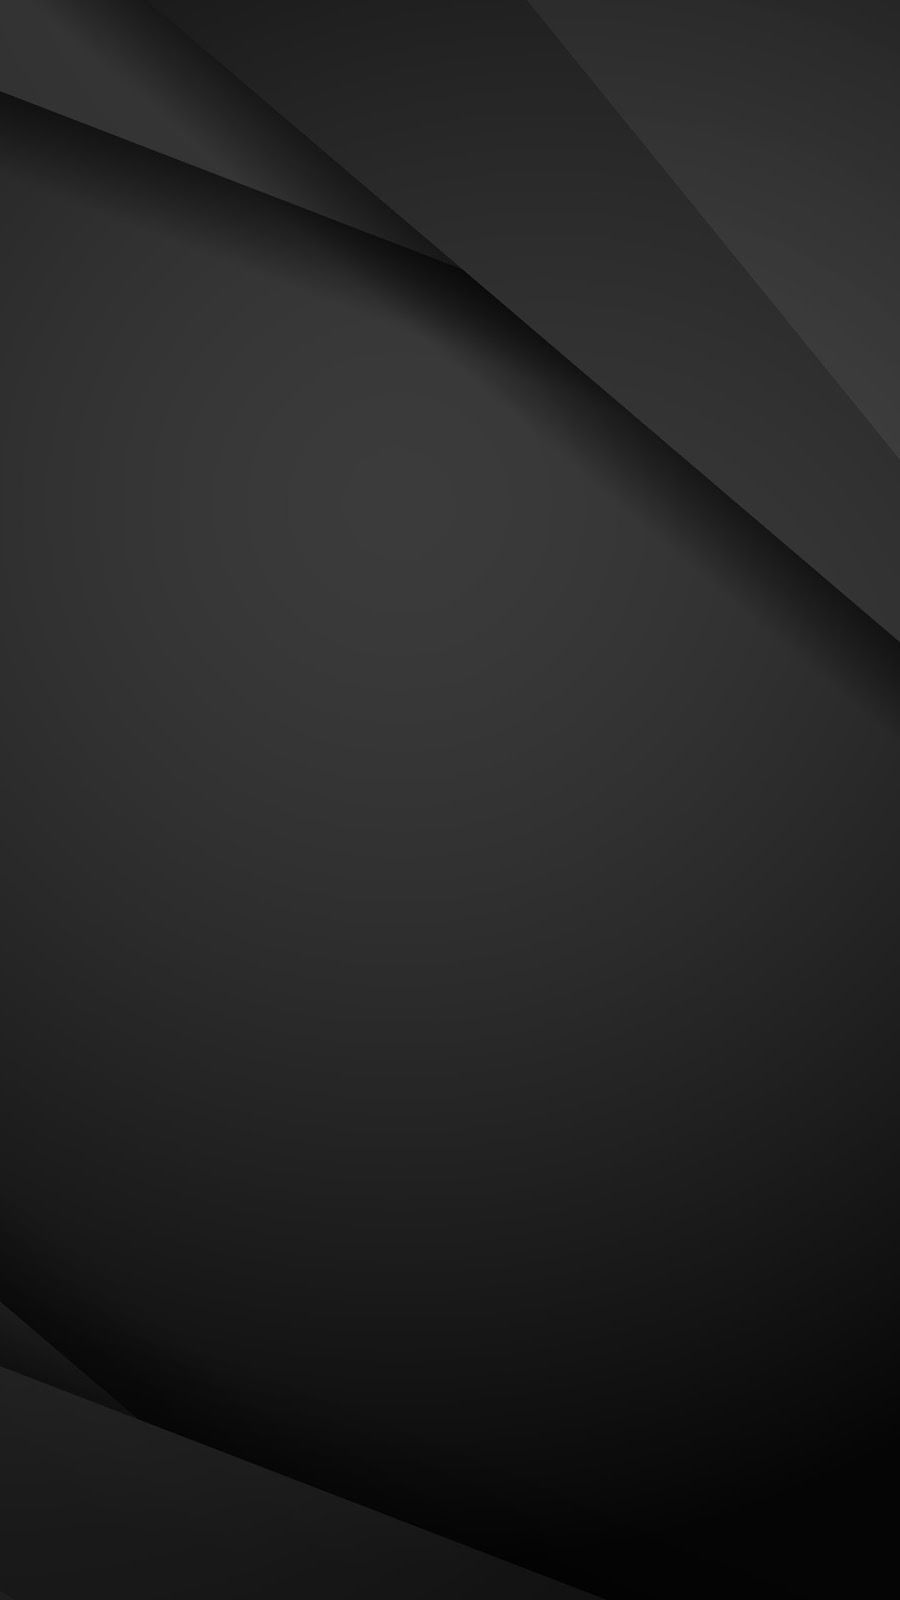 List of Premium Black Wallpaper Iphone Dark Abstract for iPhone 11 Pro Max This Month